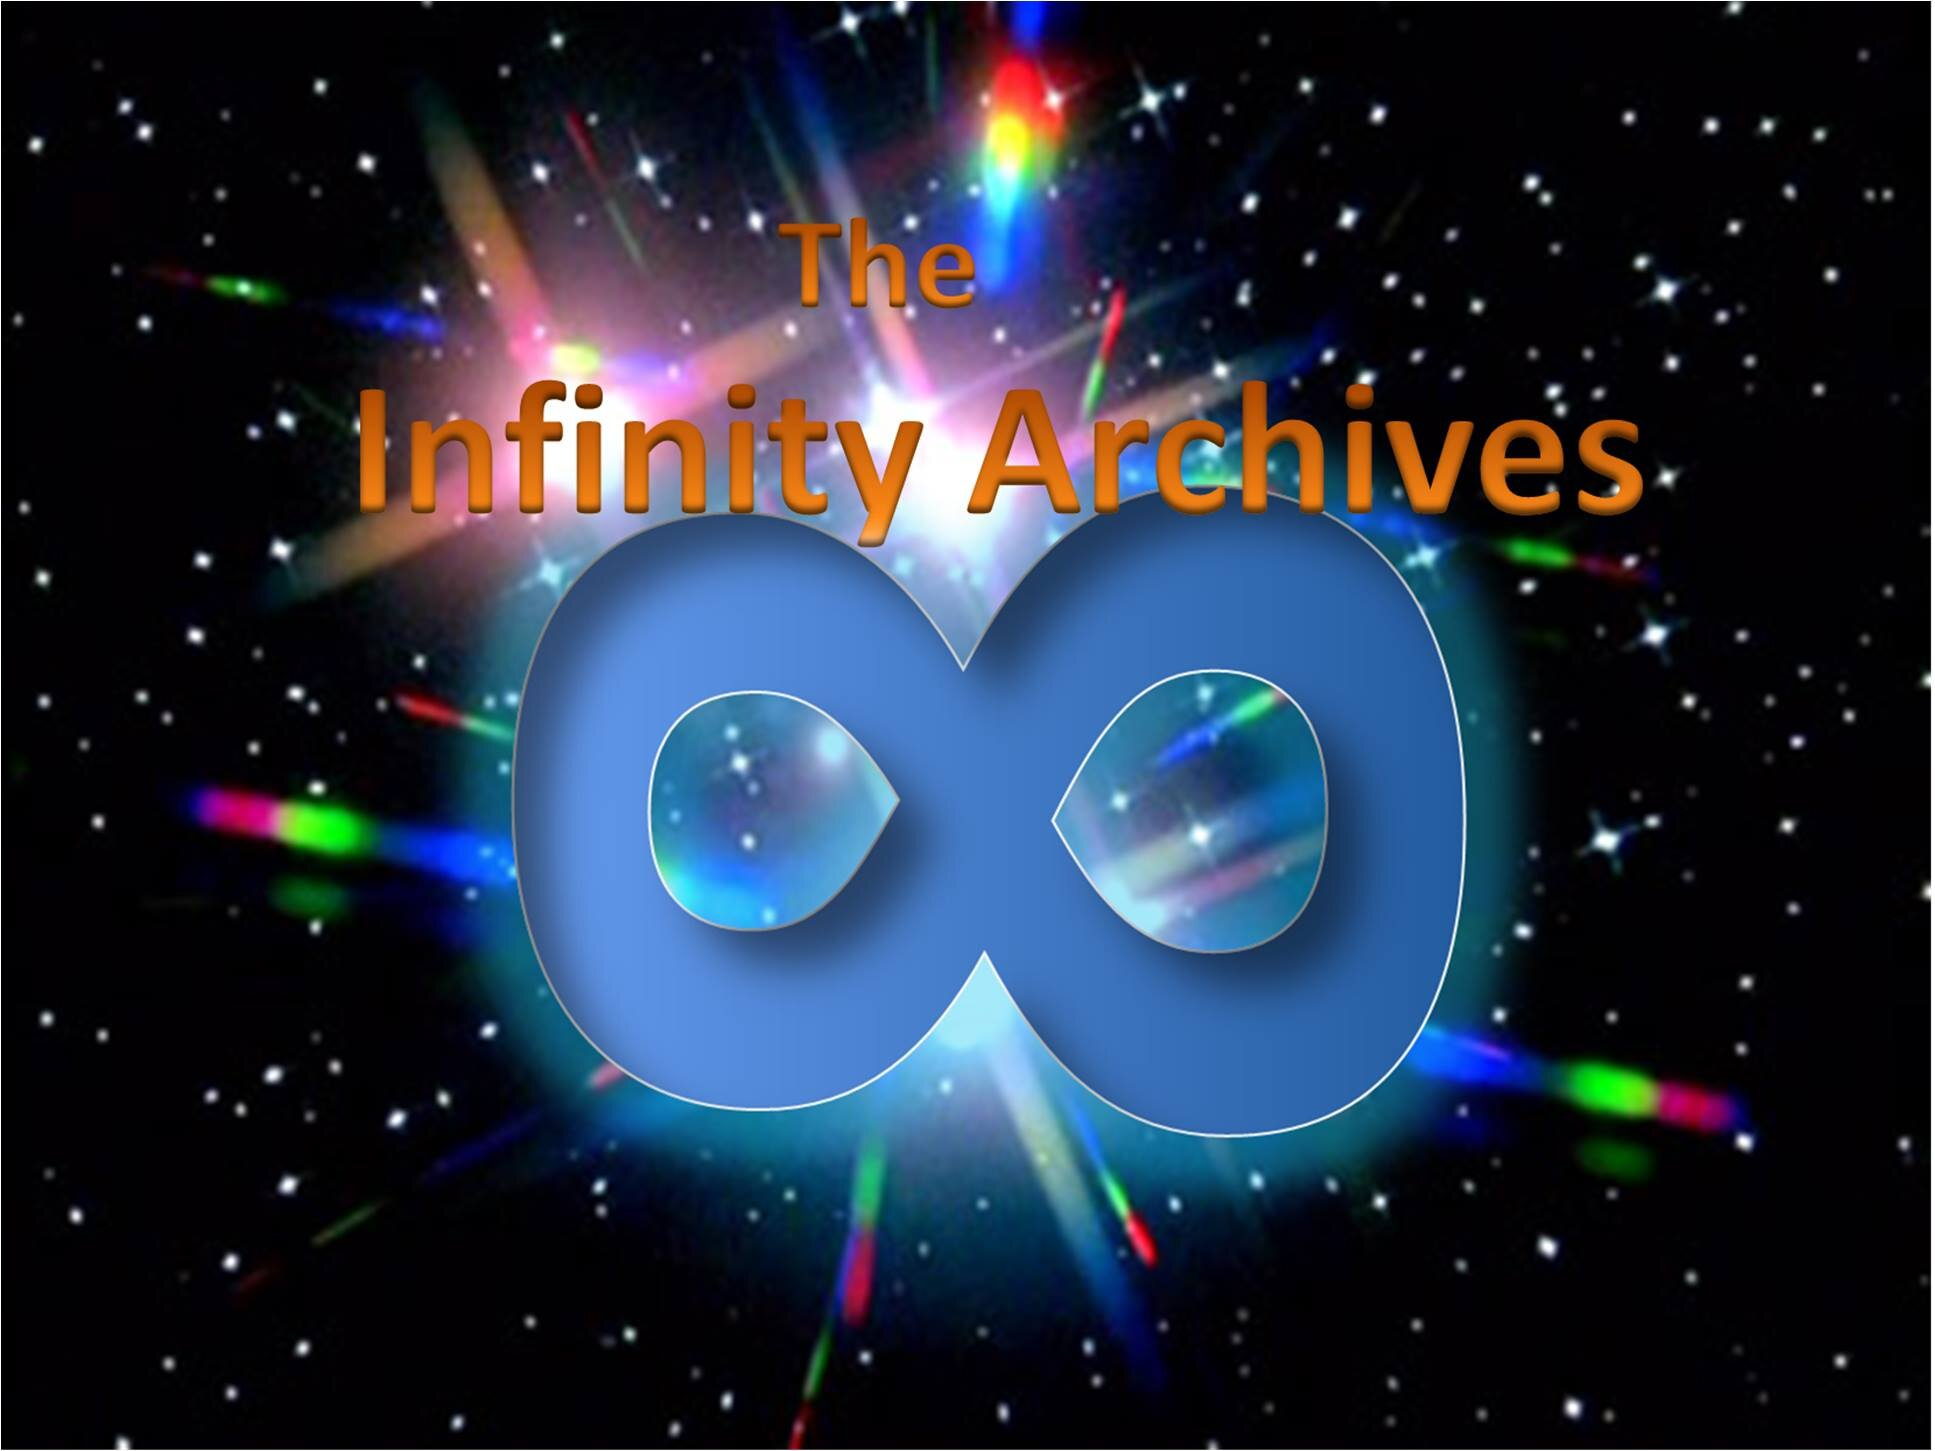 The Infinity Archives